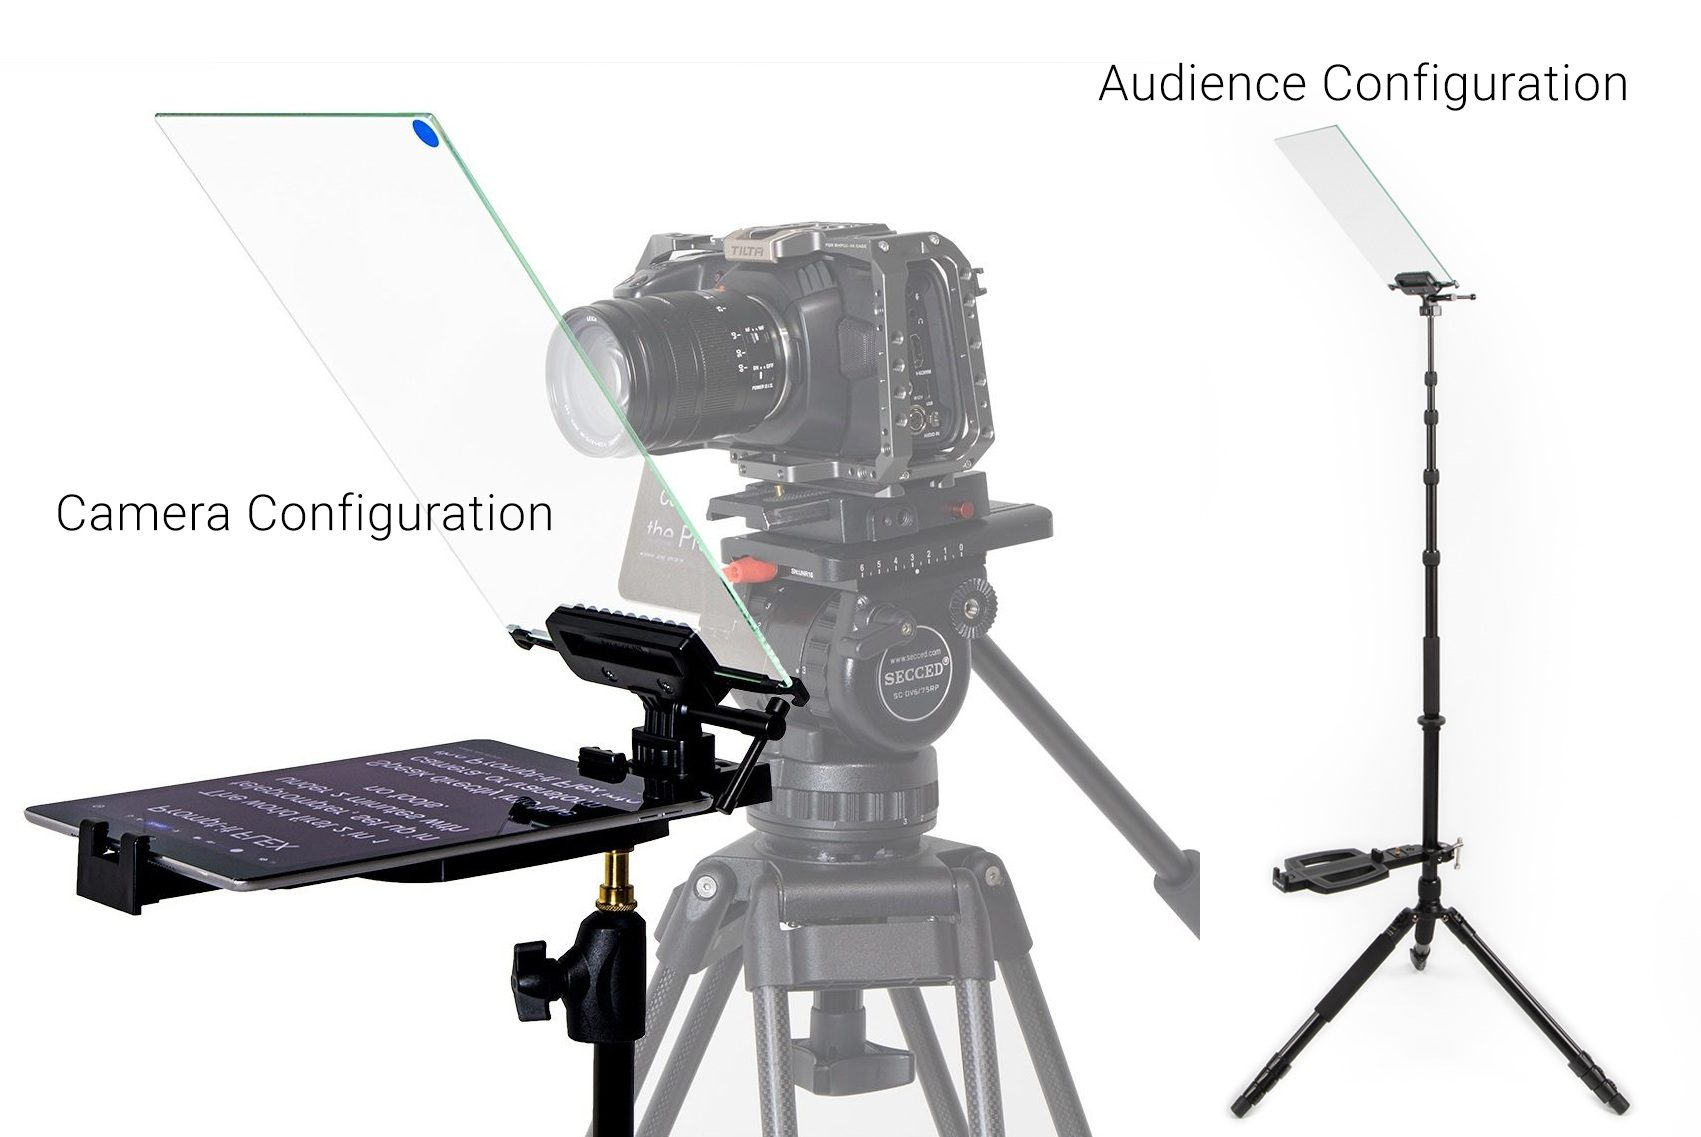 Prompt-it® Flex - the first 2-in-1 teleprompter in the world